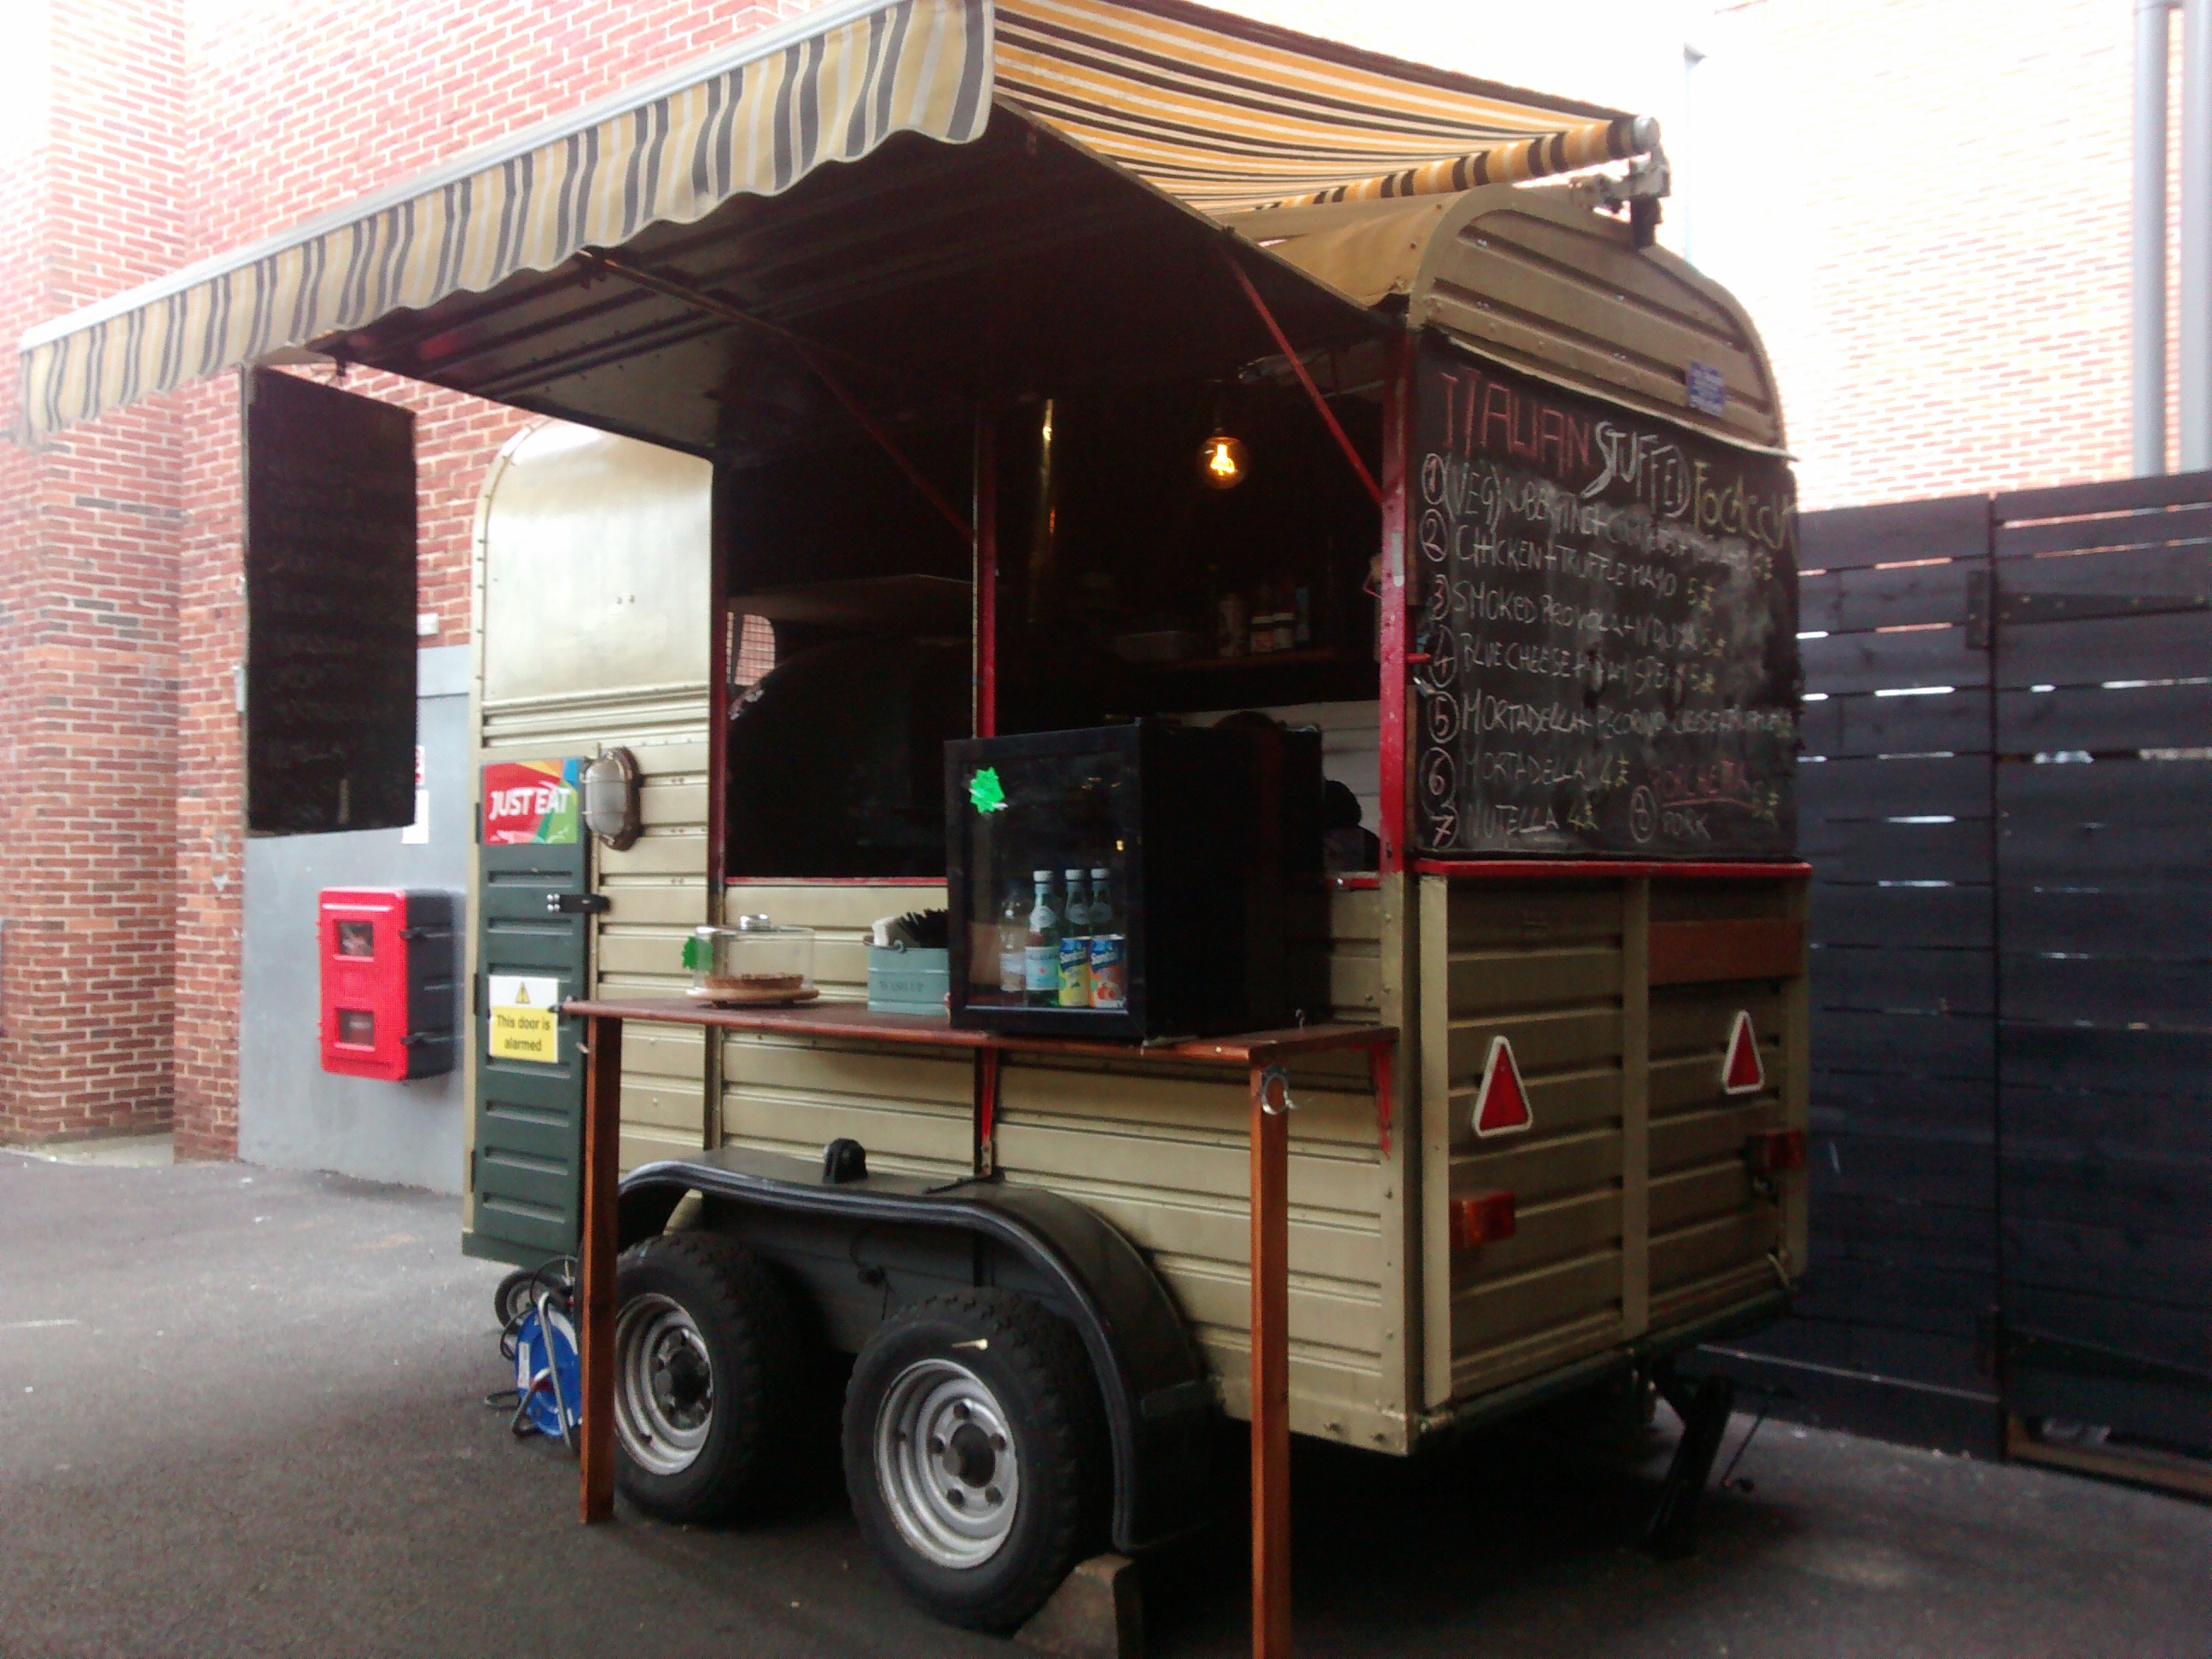 Vintage Horse Trailer Converted To Pizza Business In London